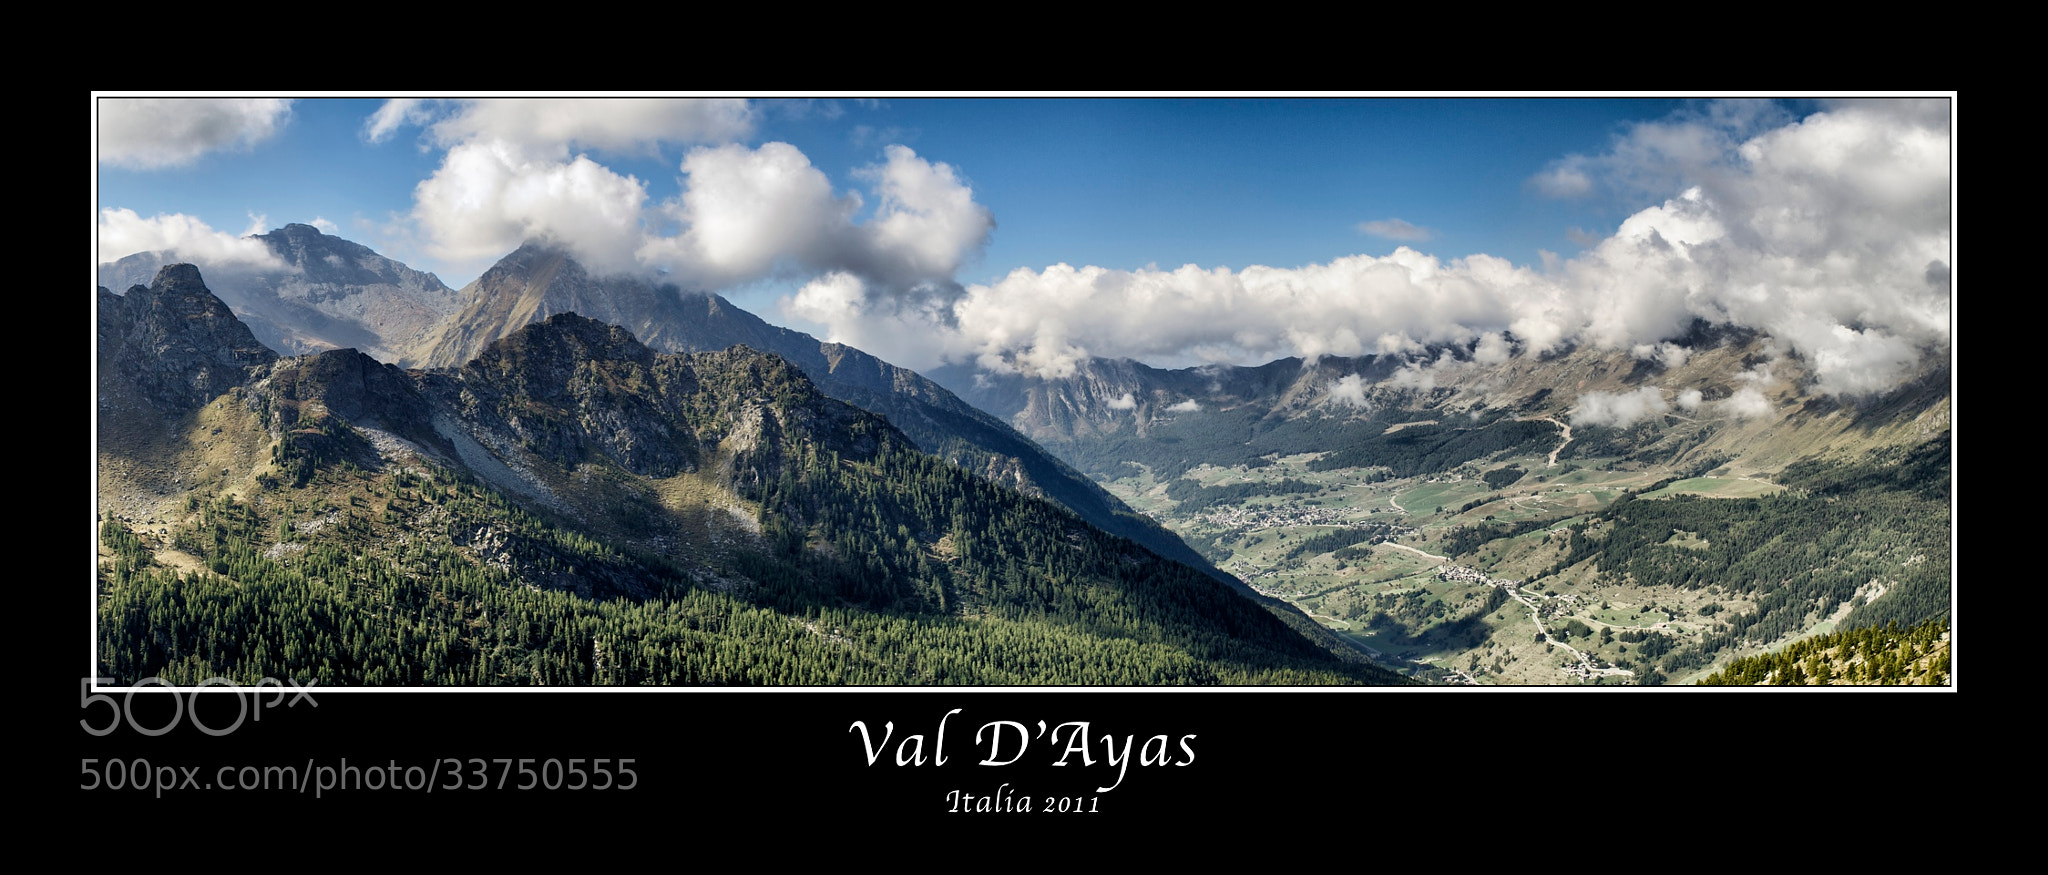 Photograph Val d'Ayas by Fede Ranghino on 500px